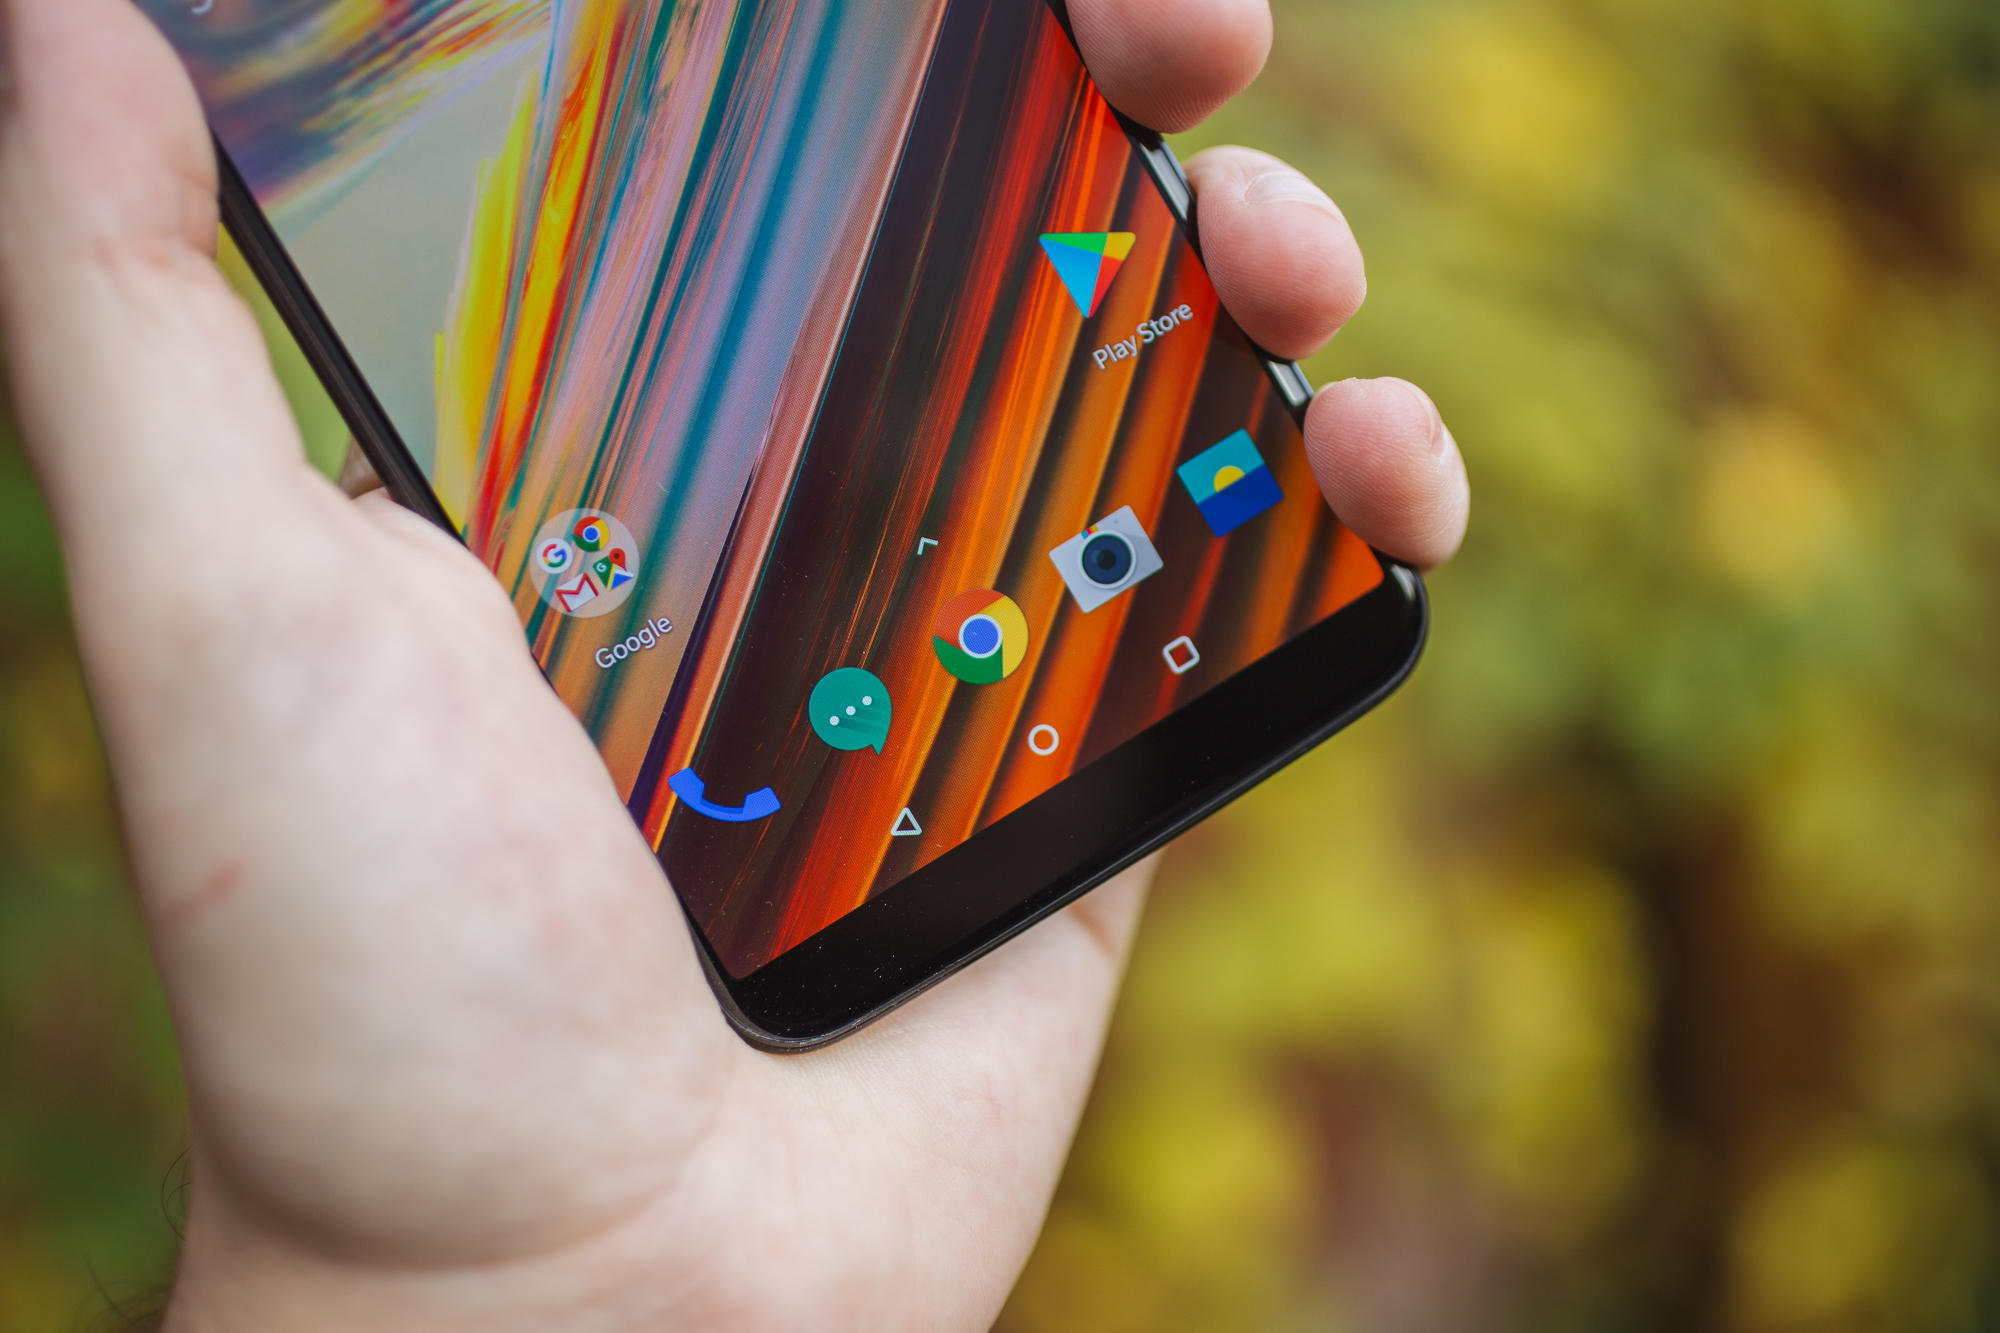 oneplus-5t-product-21